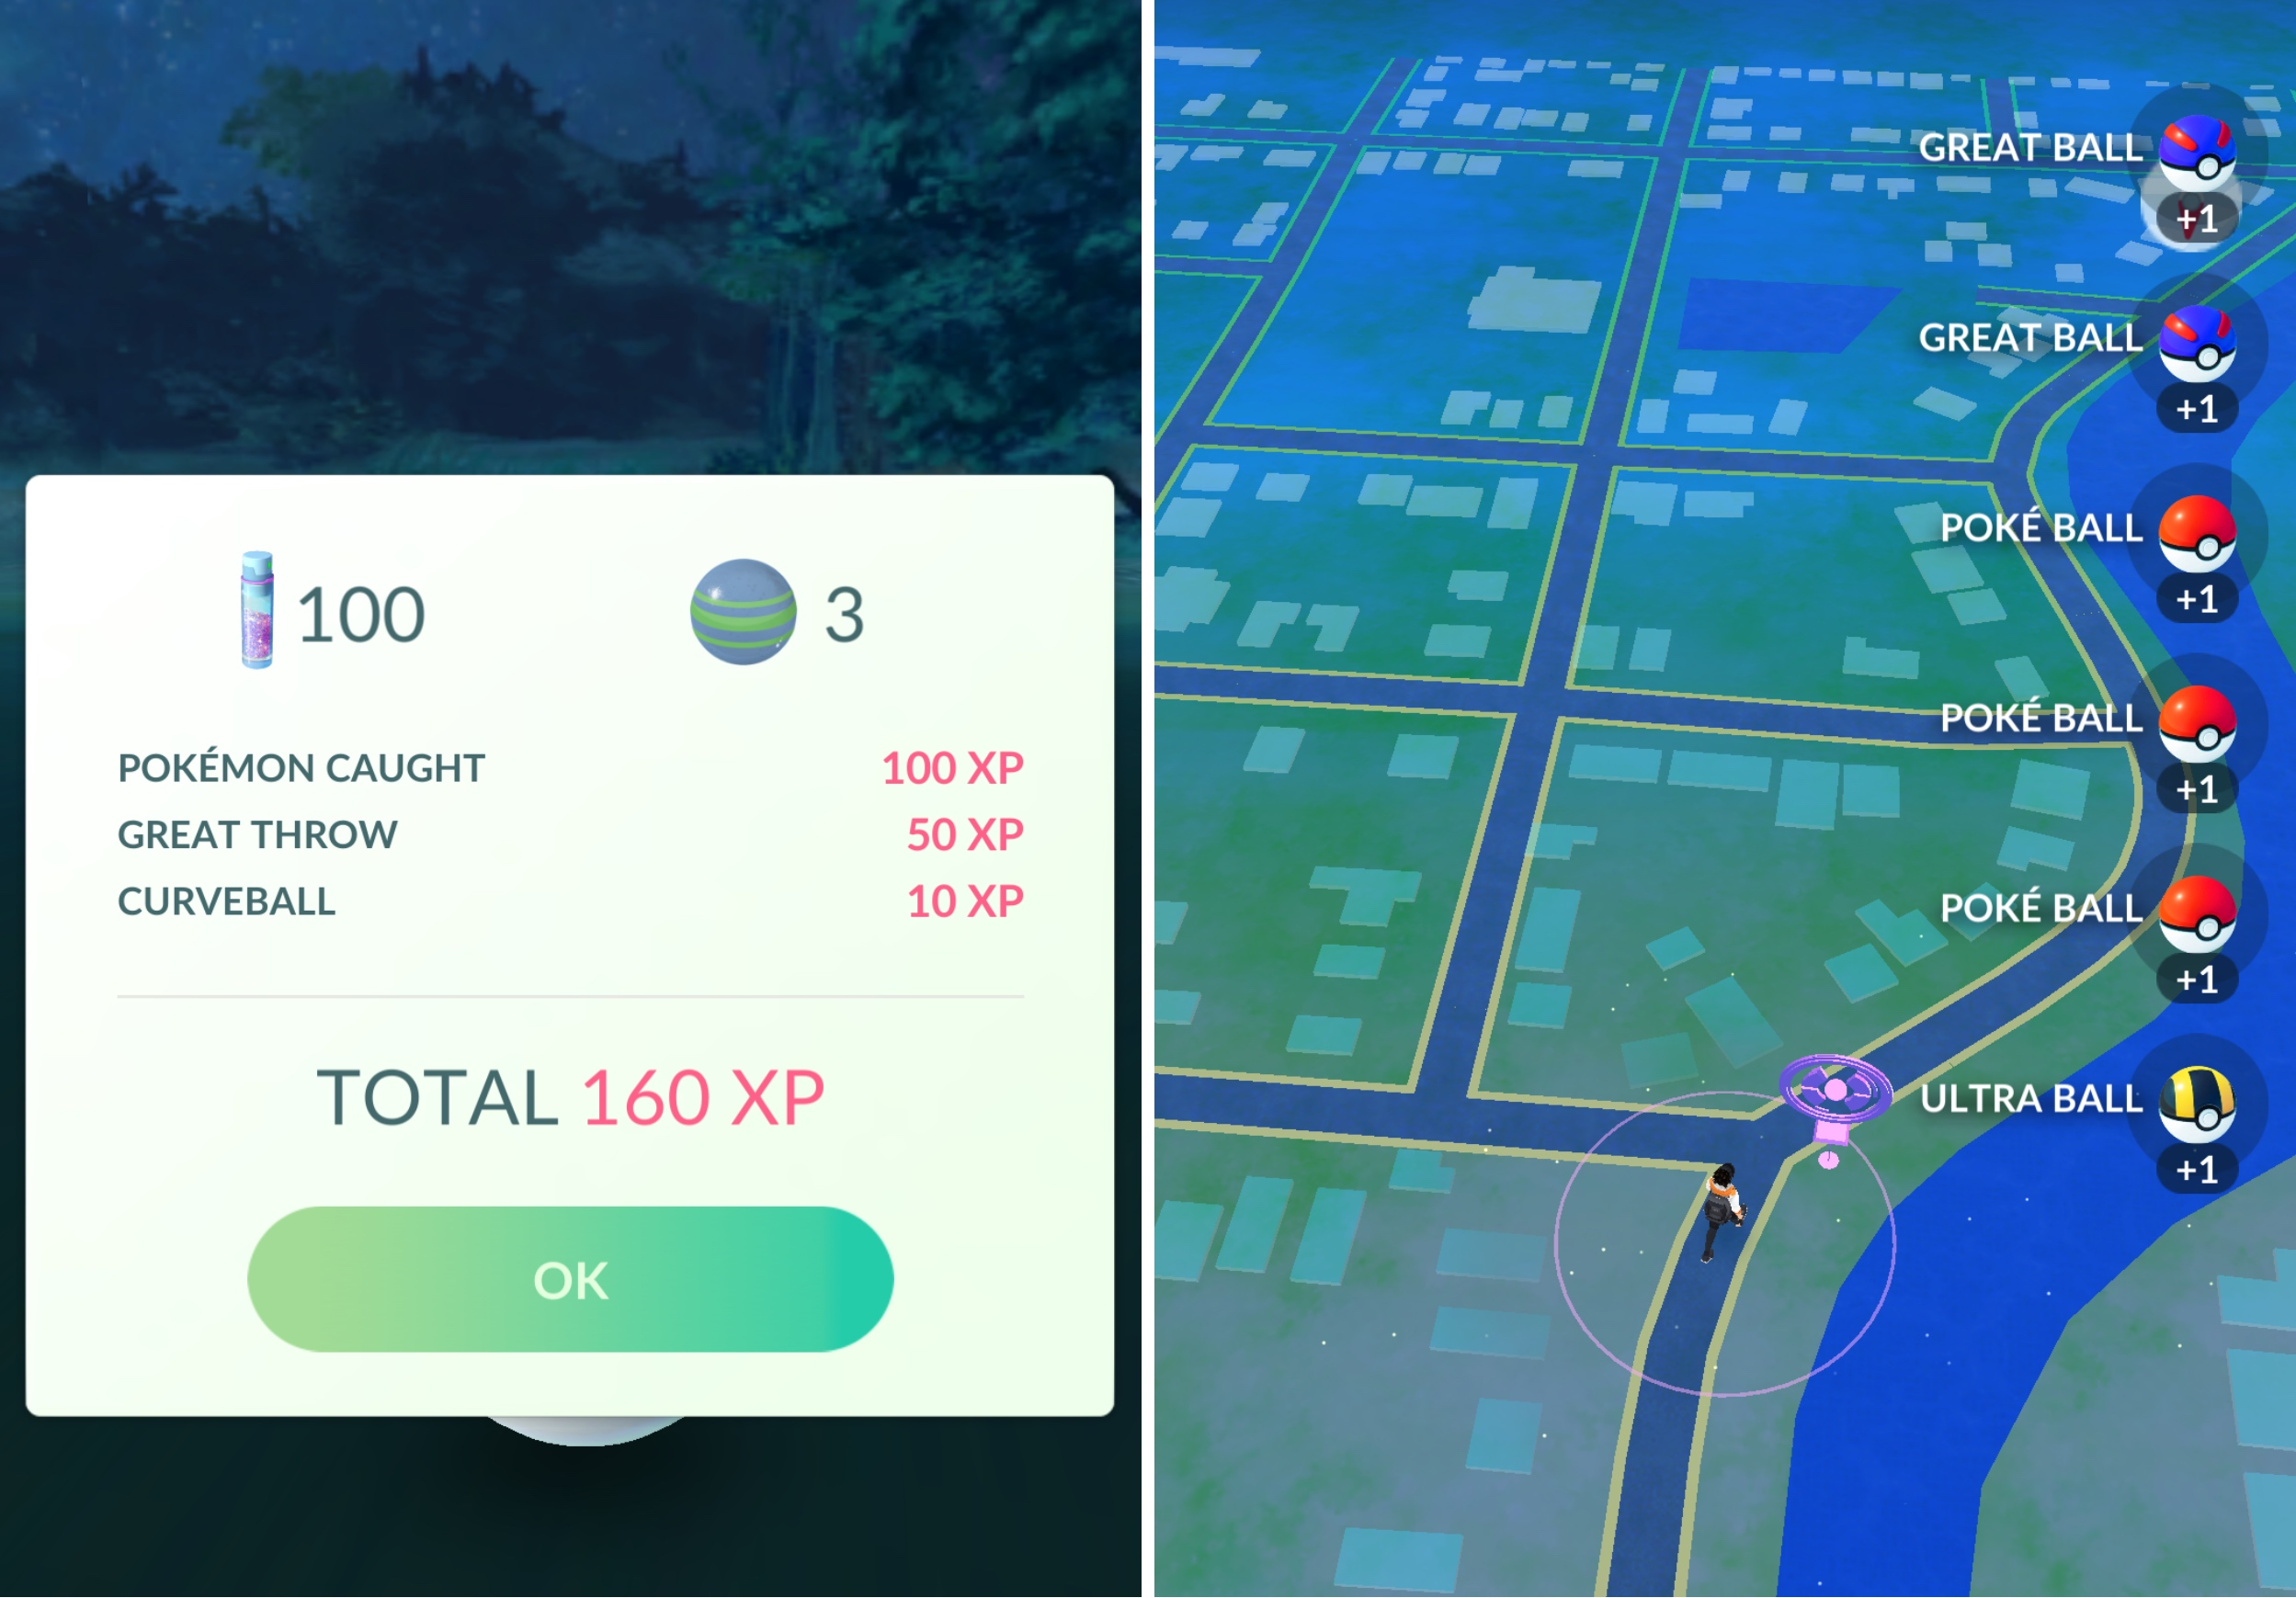 Pokego text changes